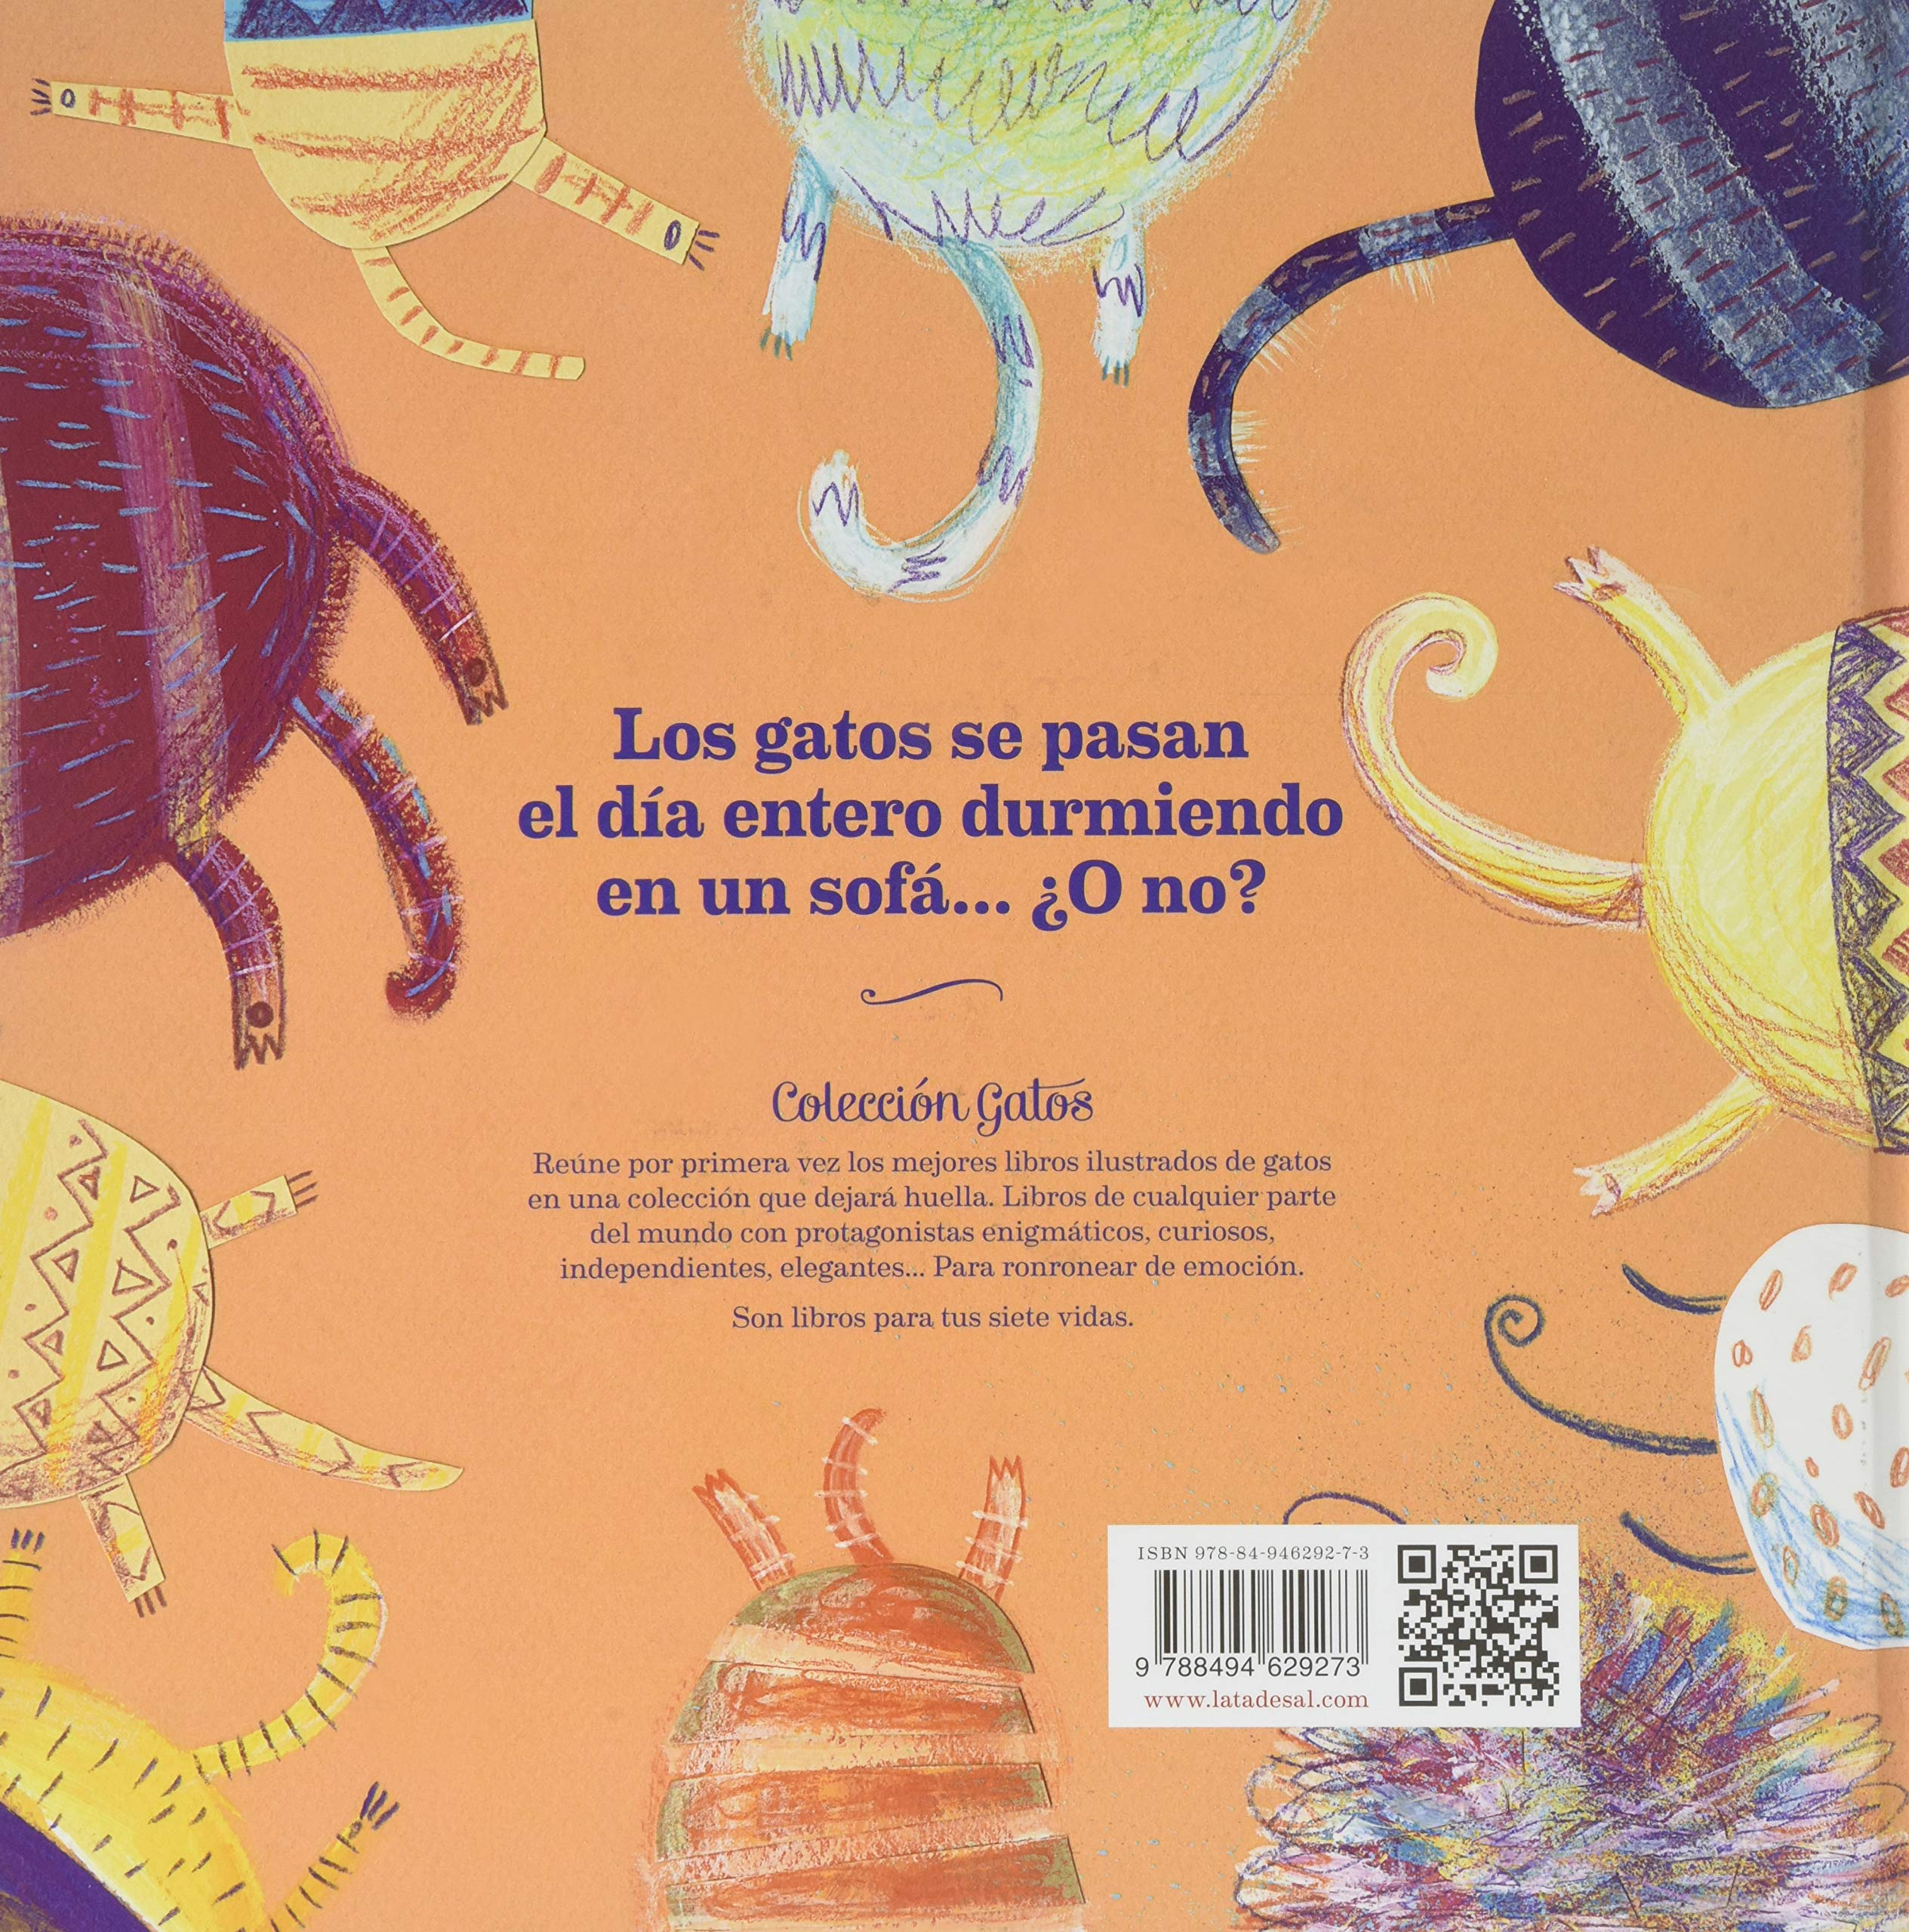 Todo Sobre Los Gatos (Spanish Edition): Monika Filipina: 9788494629273: Amazon.com: Books